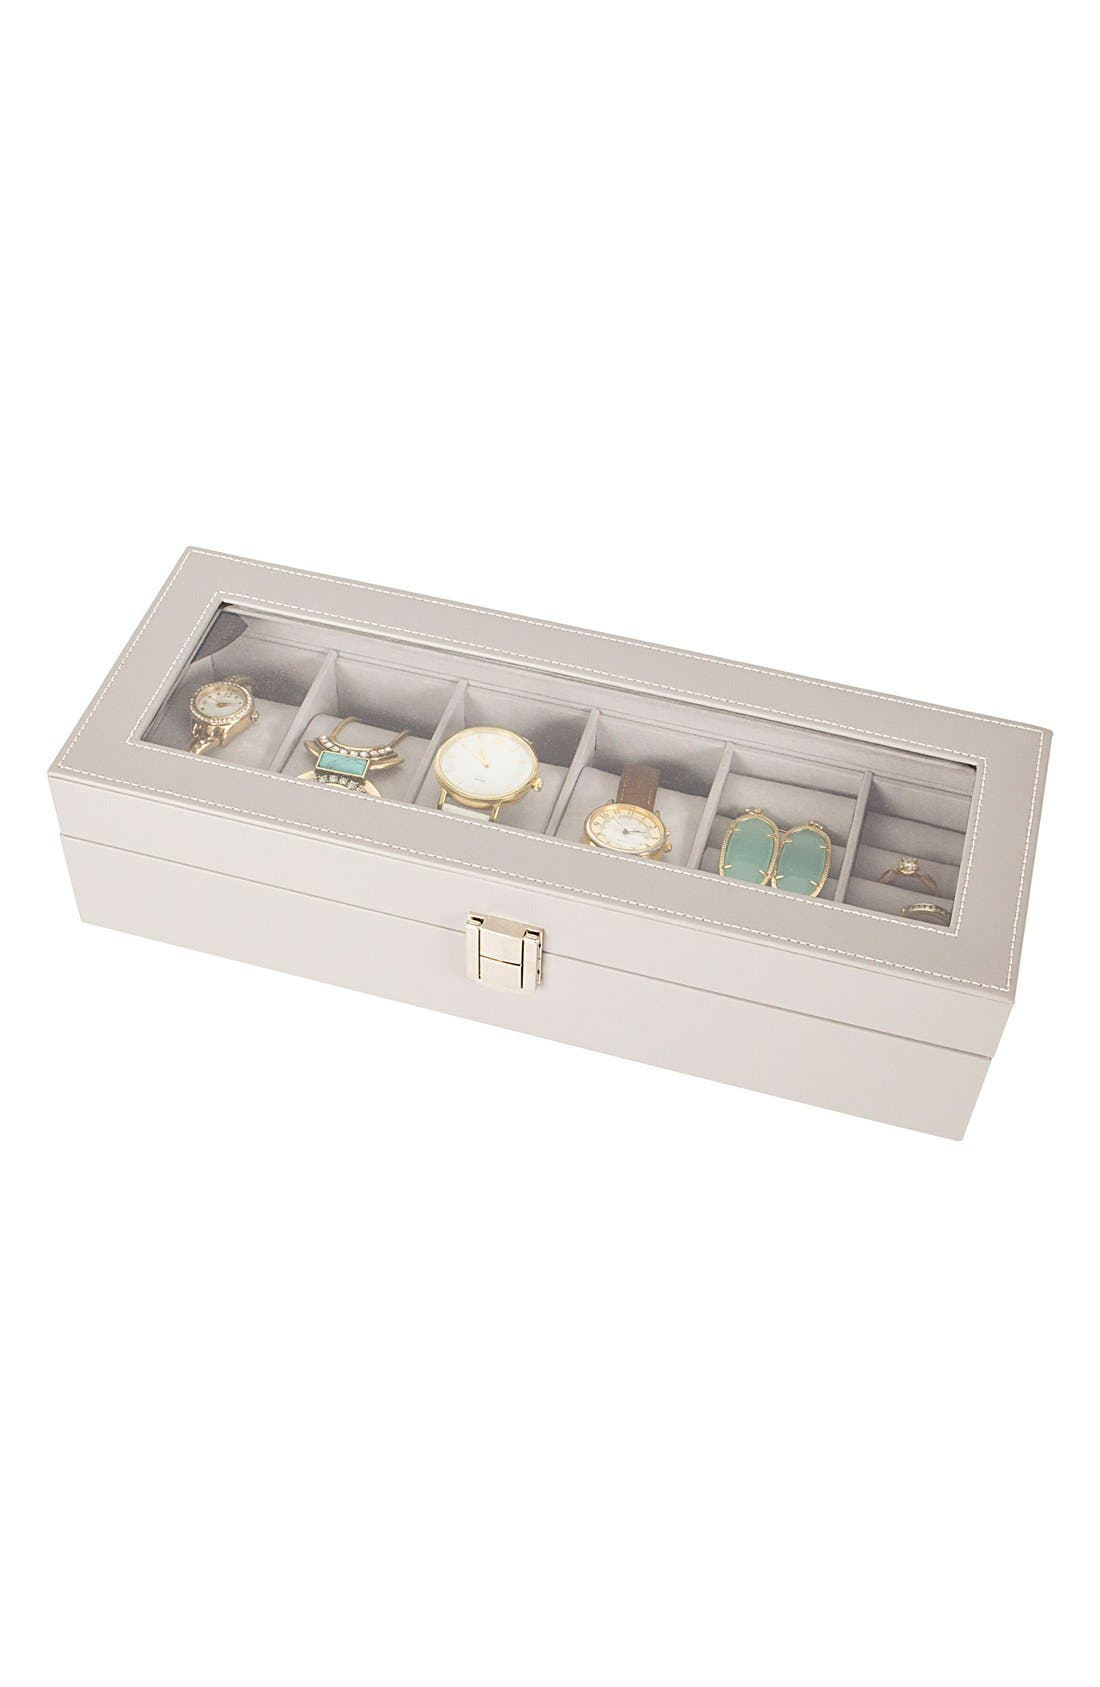 Monogram Watch & Jewelry Case,                         Main,                         color, BLANK